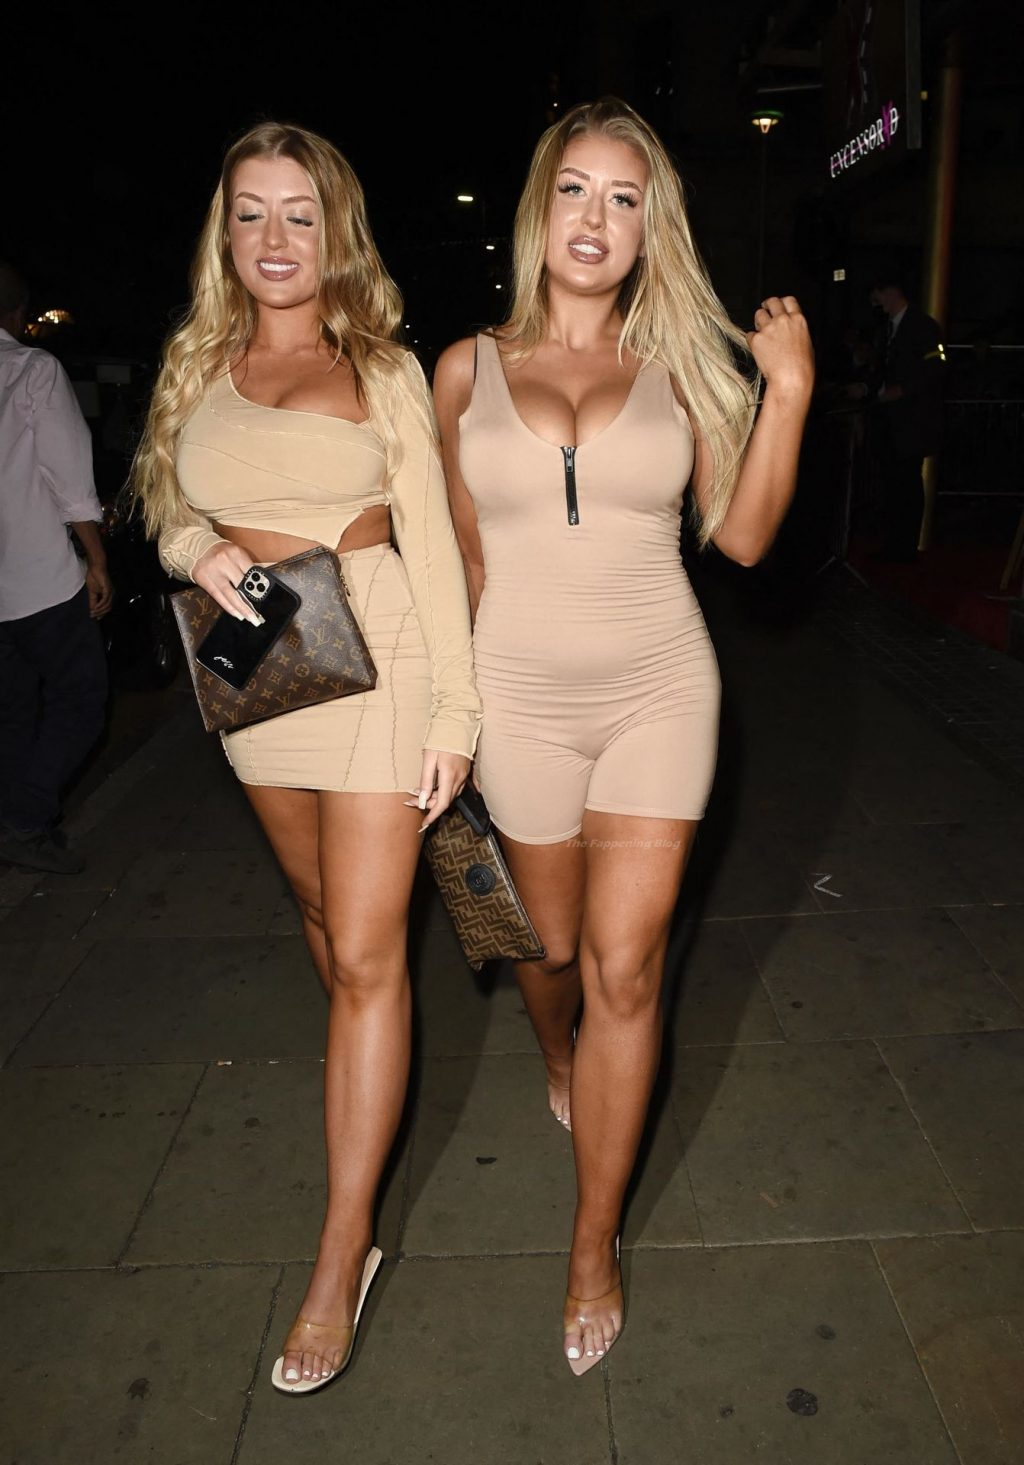 Busty Jess & Eve Gale are Seen at Impossible in Manchester (18 Photos)